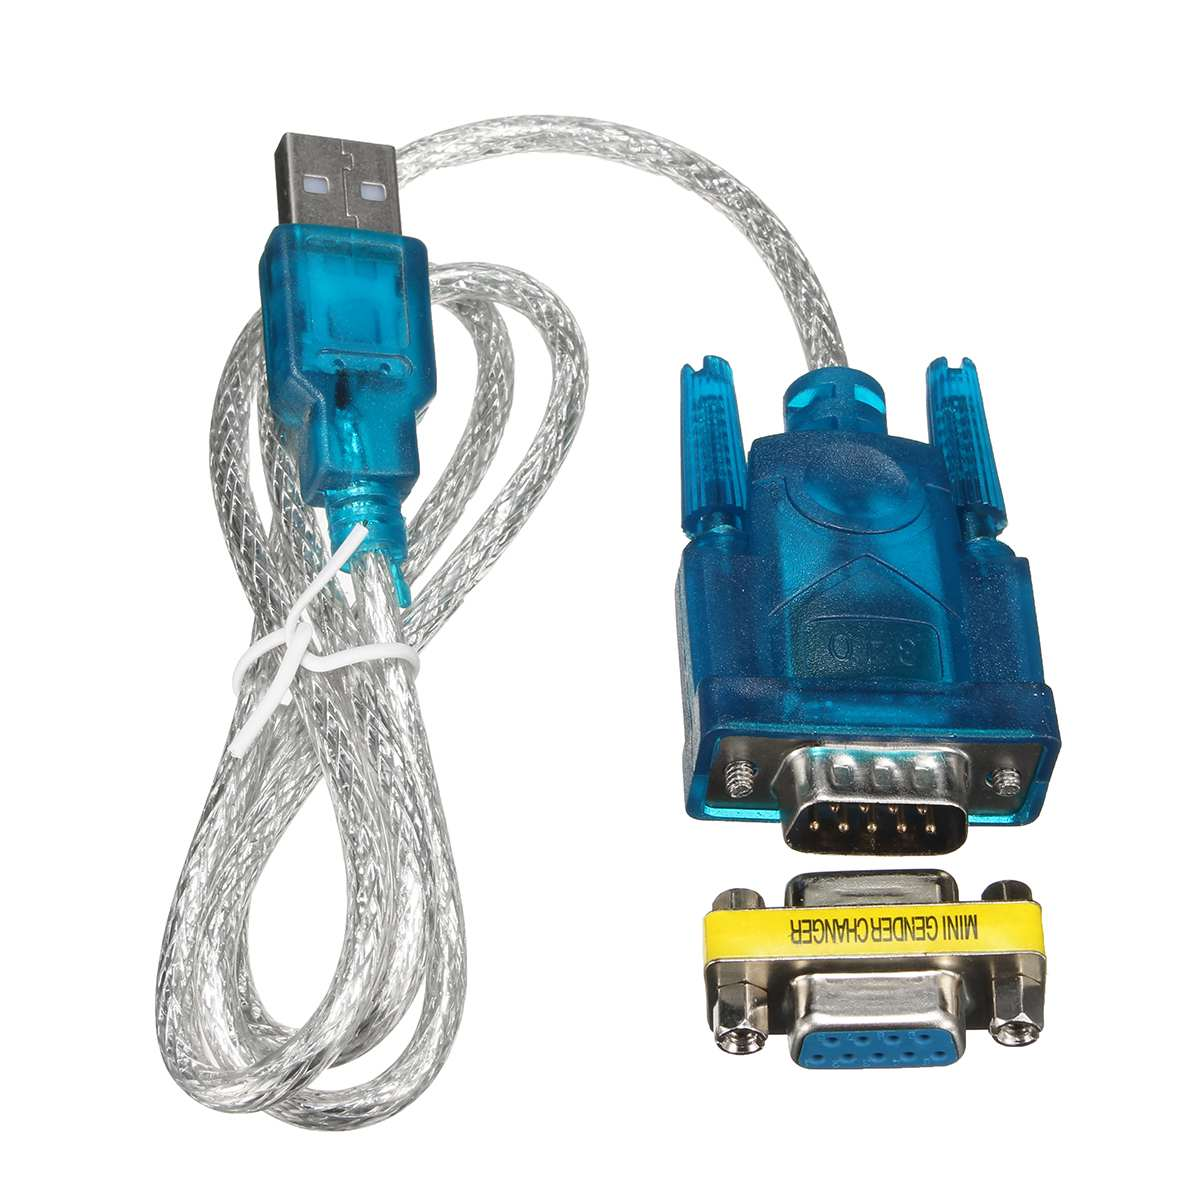 USB to RS232 DB9 Male Adapter 9-pin Serial Cable /& Driver CD Support Win 7//8//10